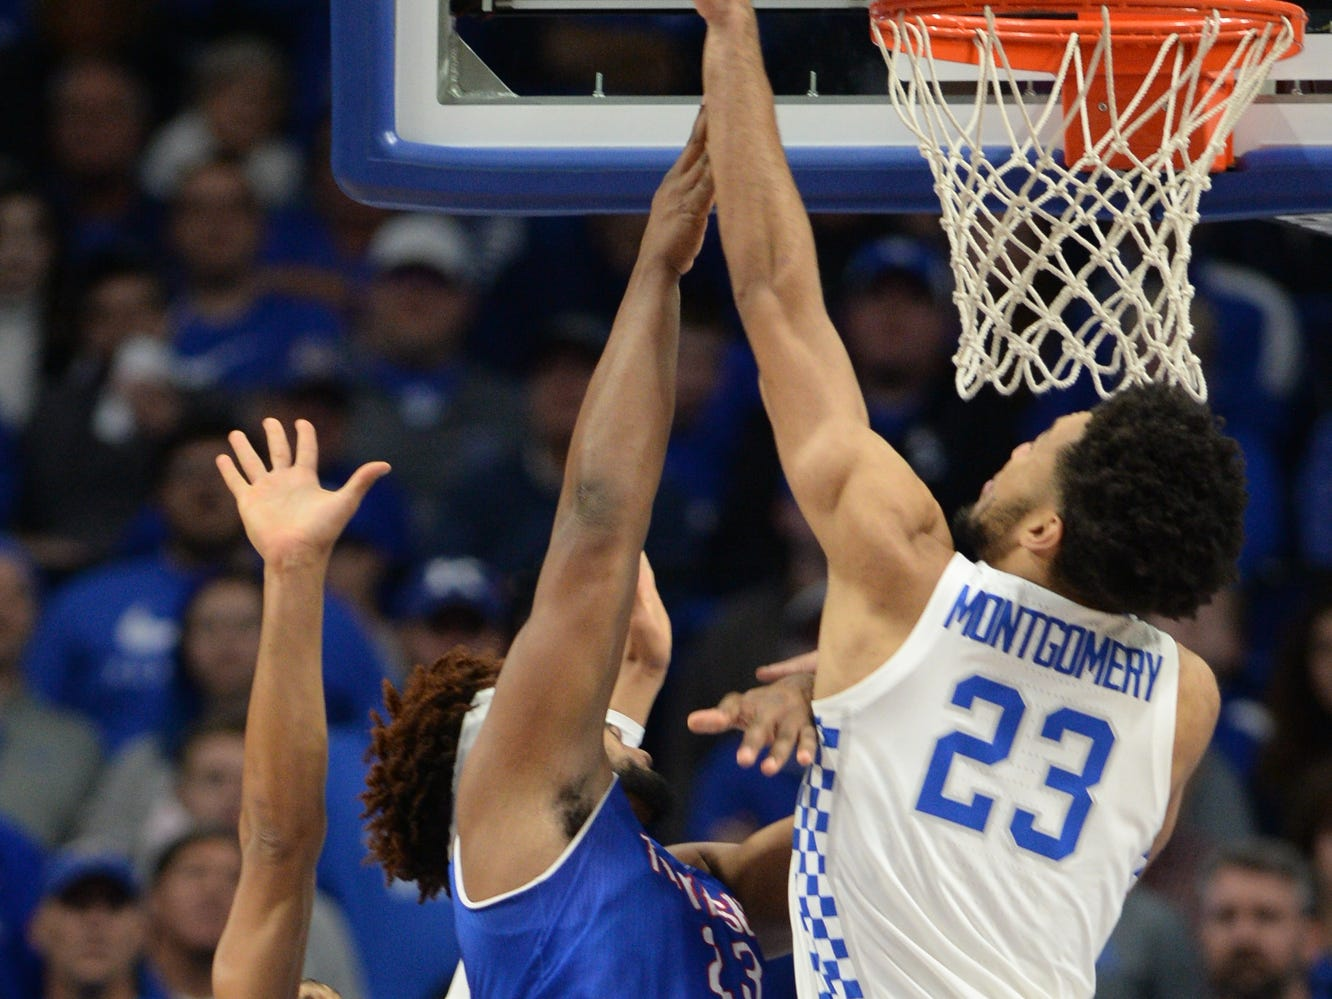 UK forward EJ Montgomery blocks the ball during the University of Kentucky men's basketball game against Tennessee State at Rupp Arena in Lexington, Kentucky, on Friday, Nov. 23, 2018.